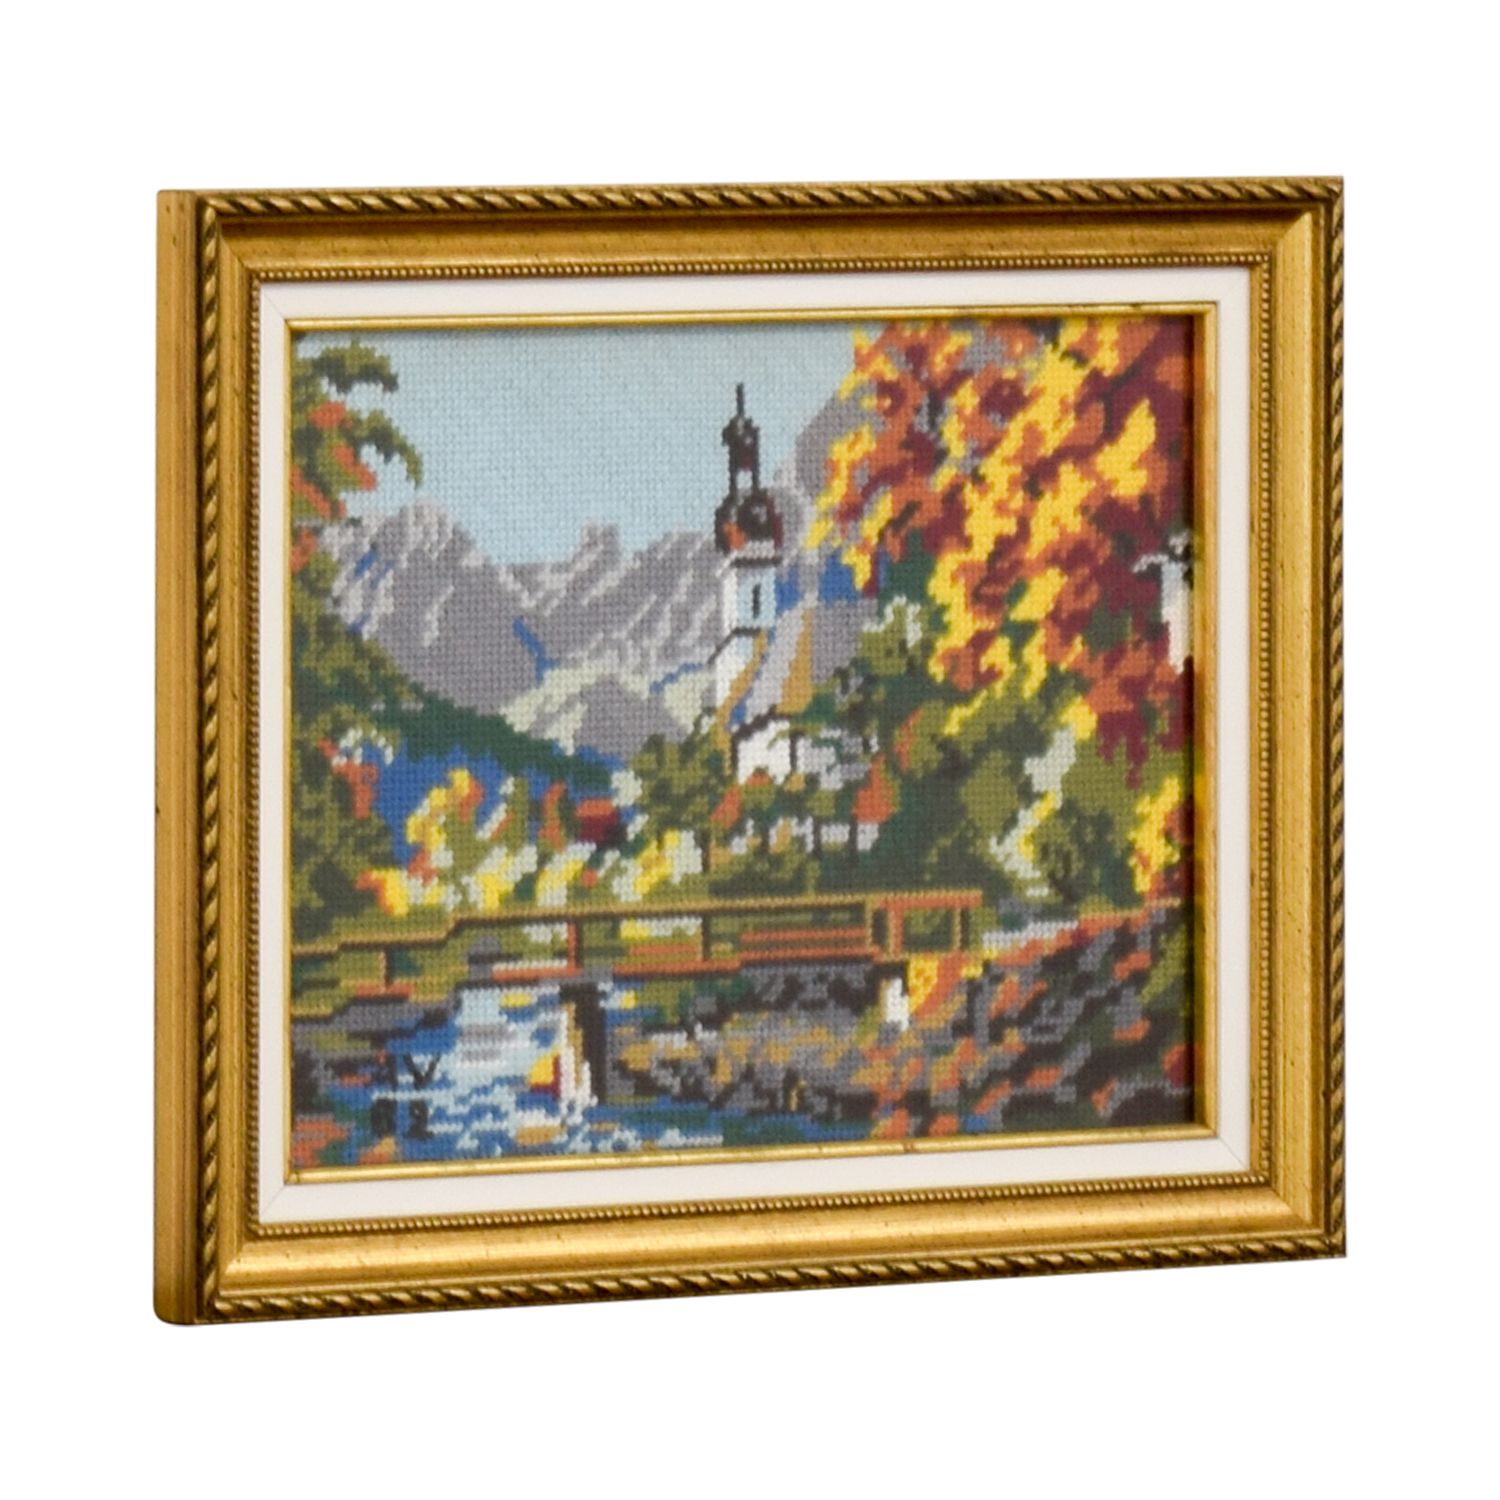 Framed Switzerland Church Bridge Needlepoint coupon